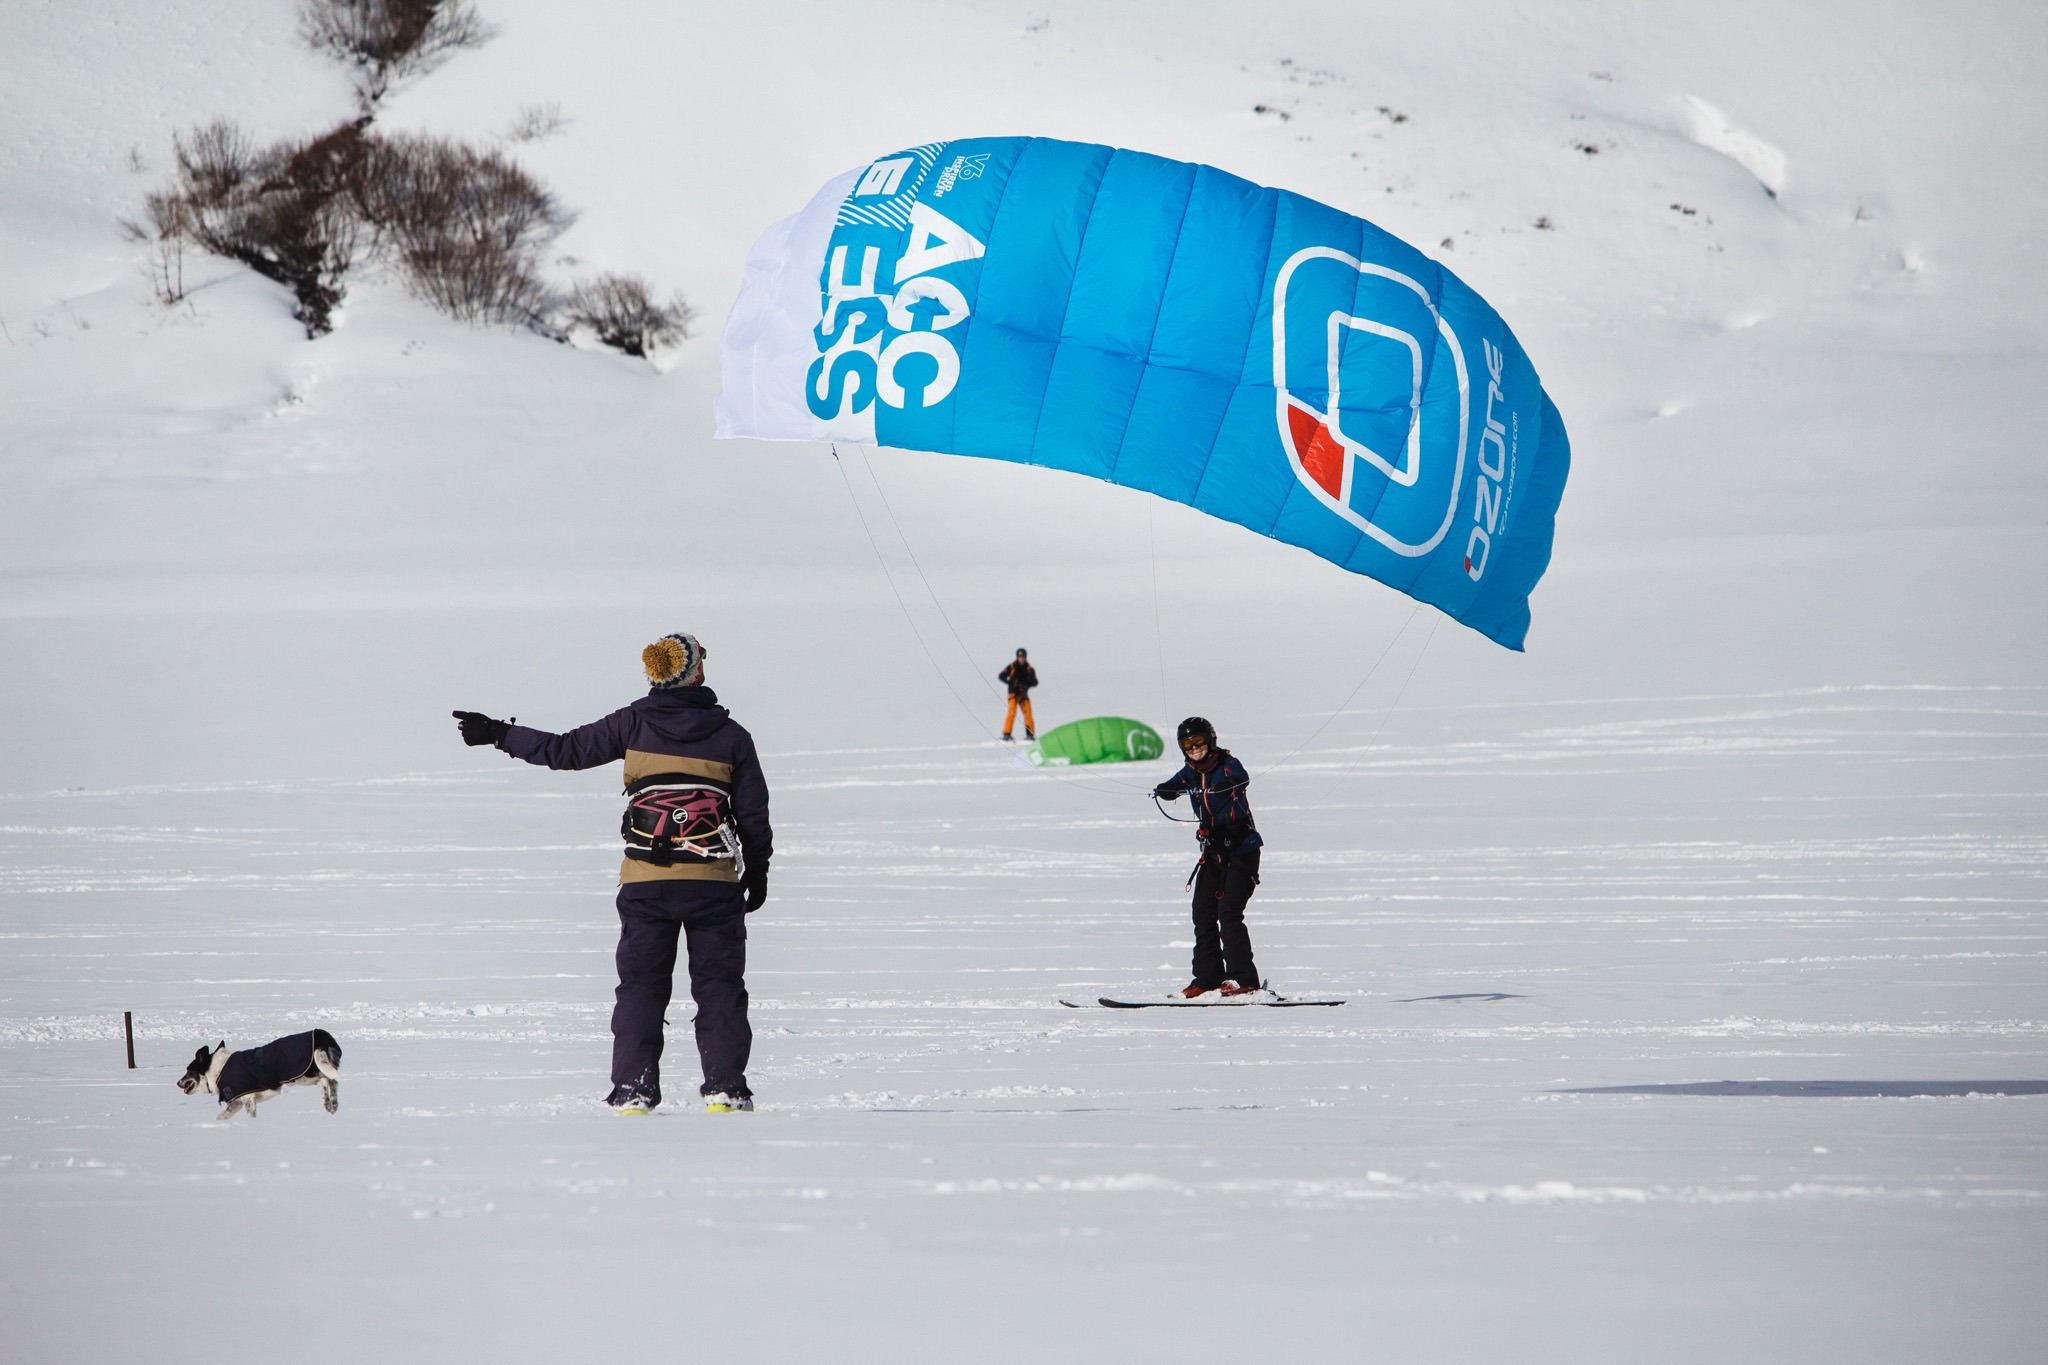 The Big Blue Experience Snow kiting